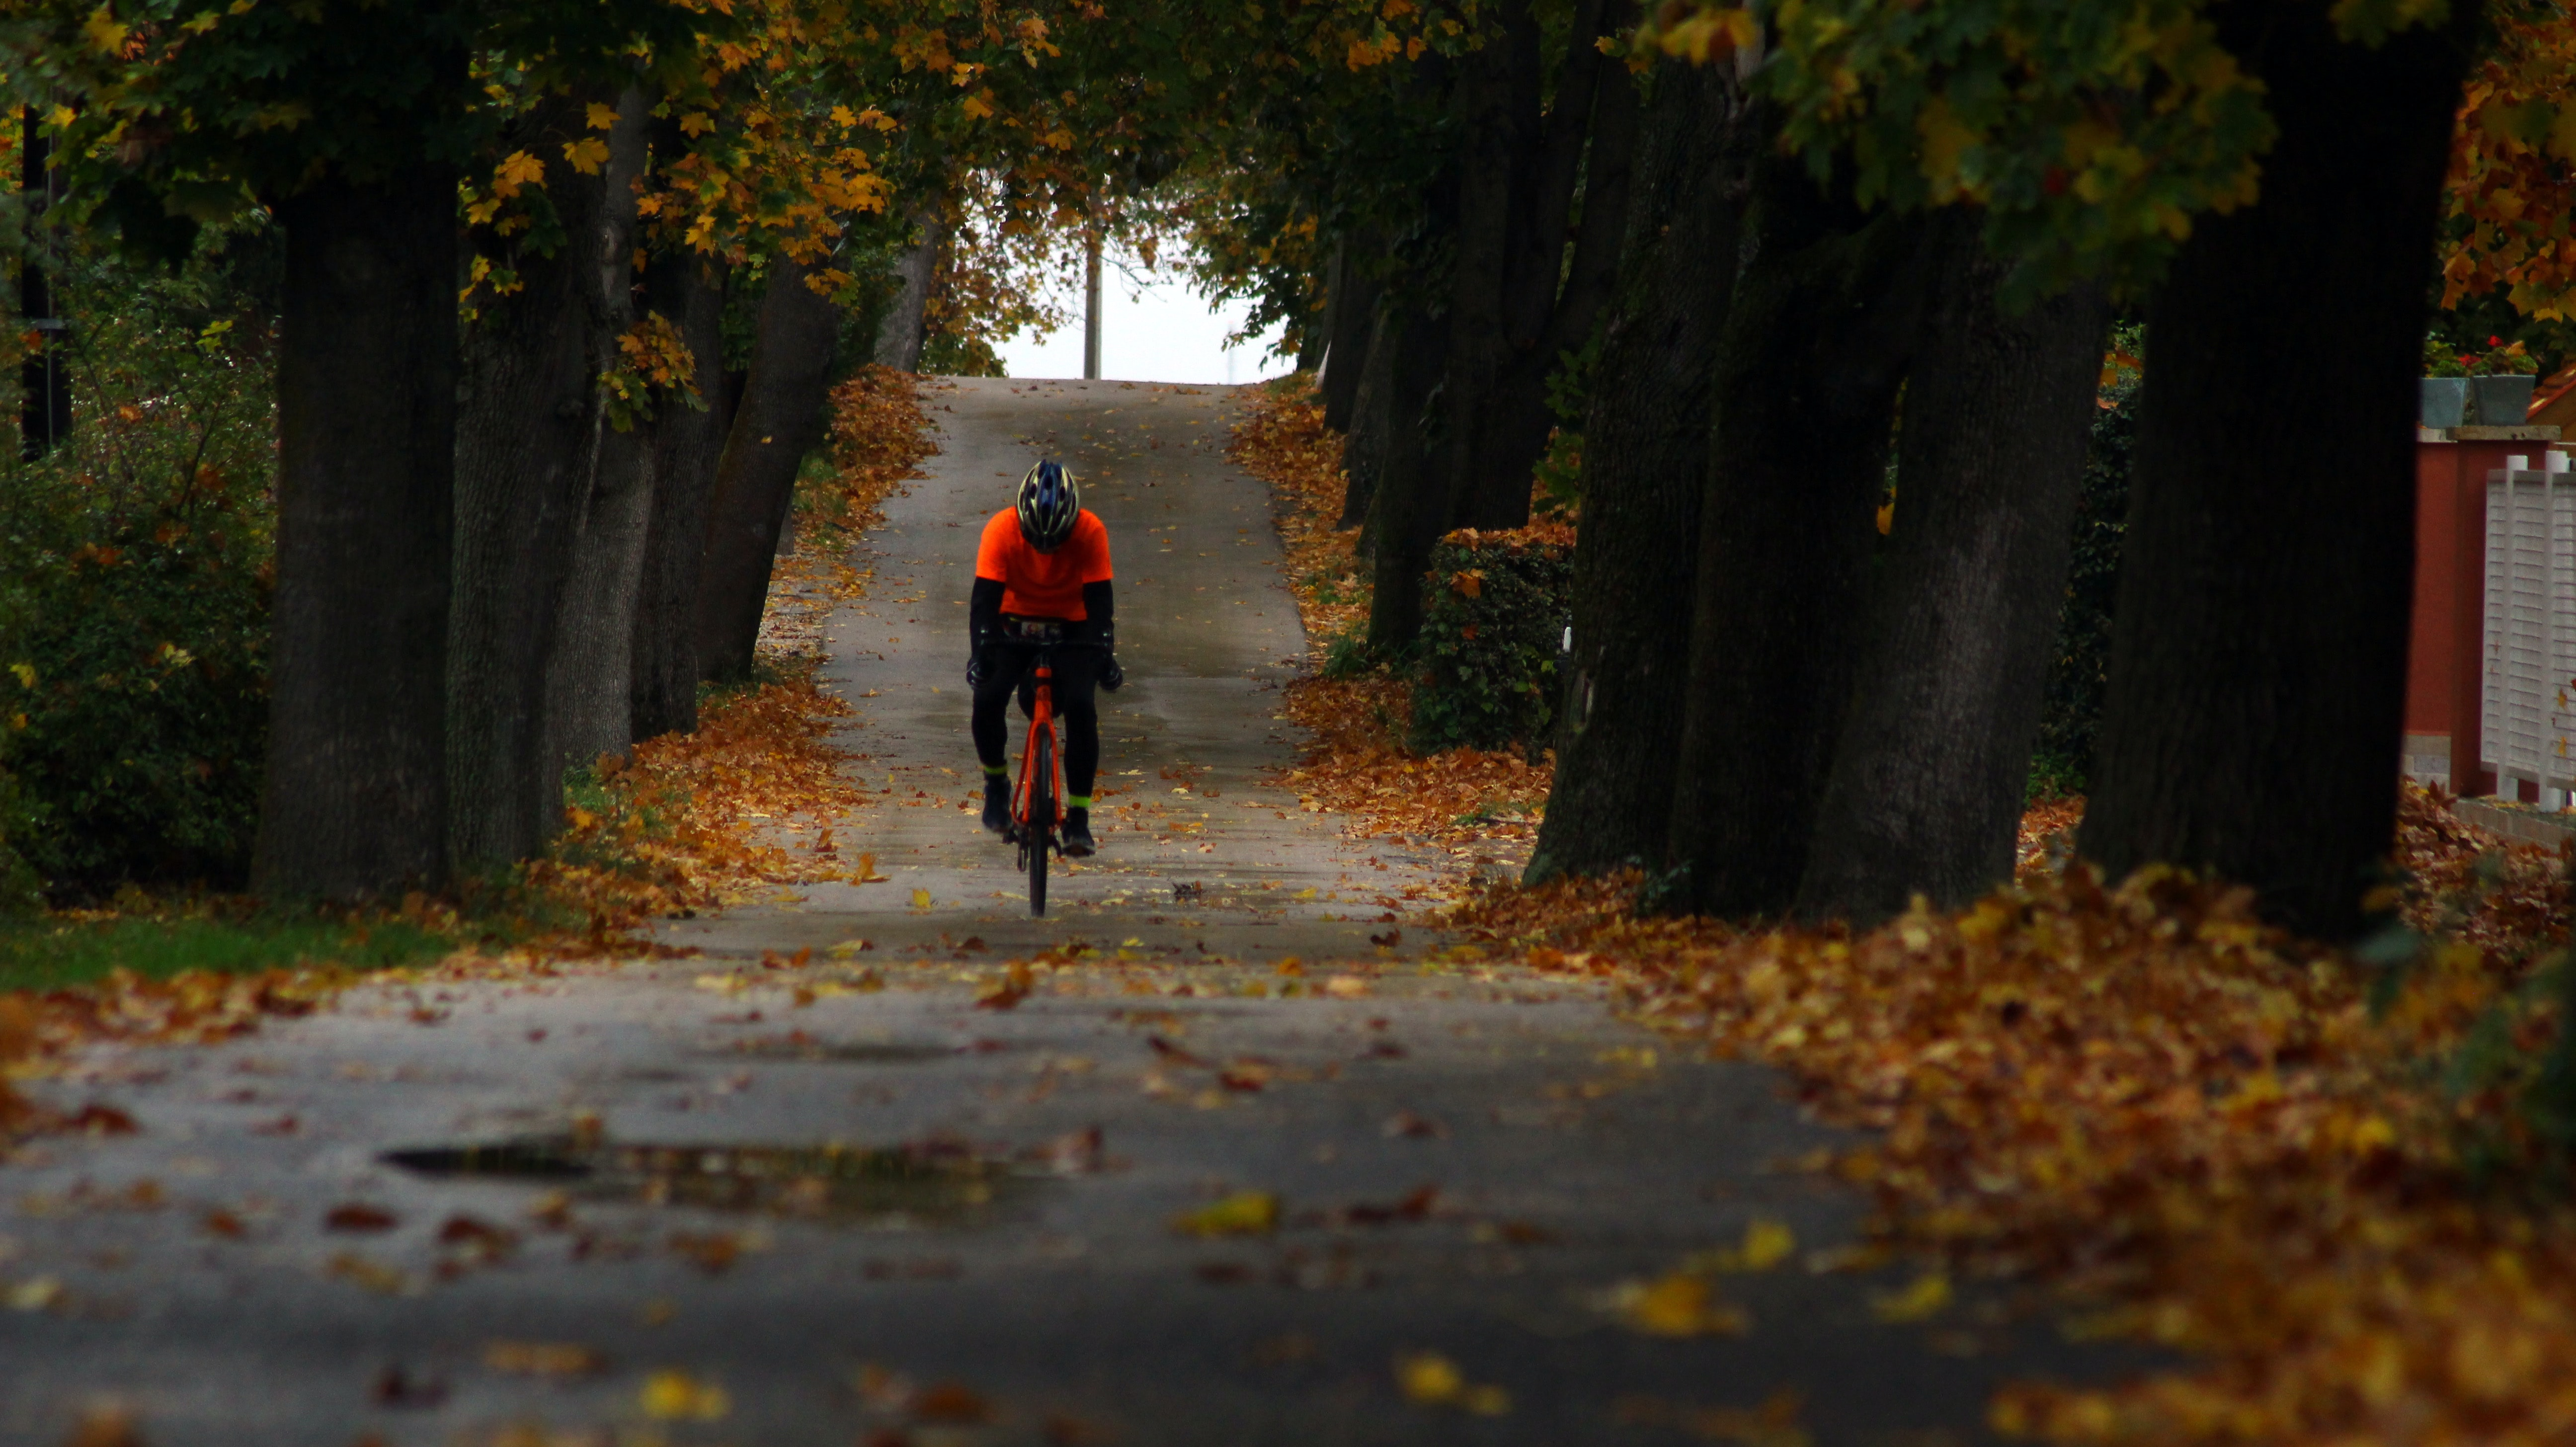 person riding bicycle between trees